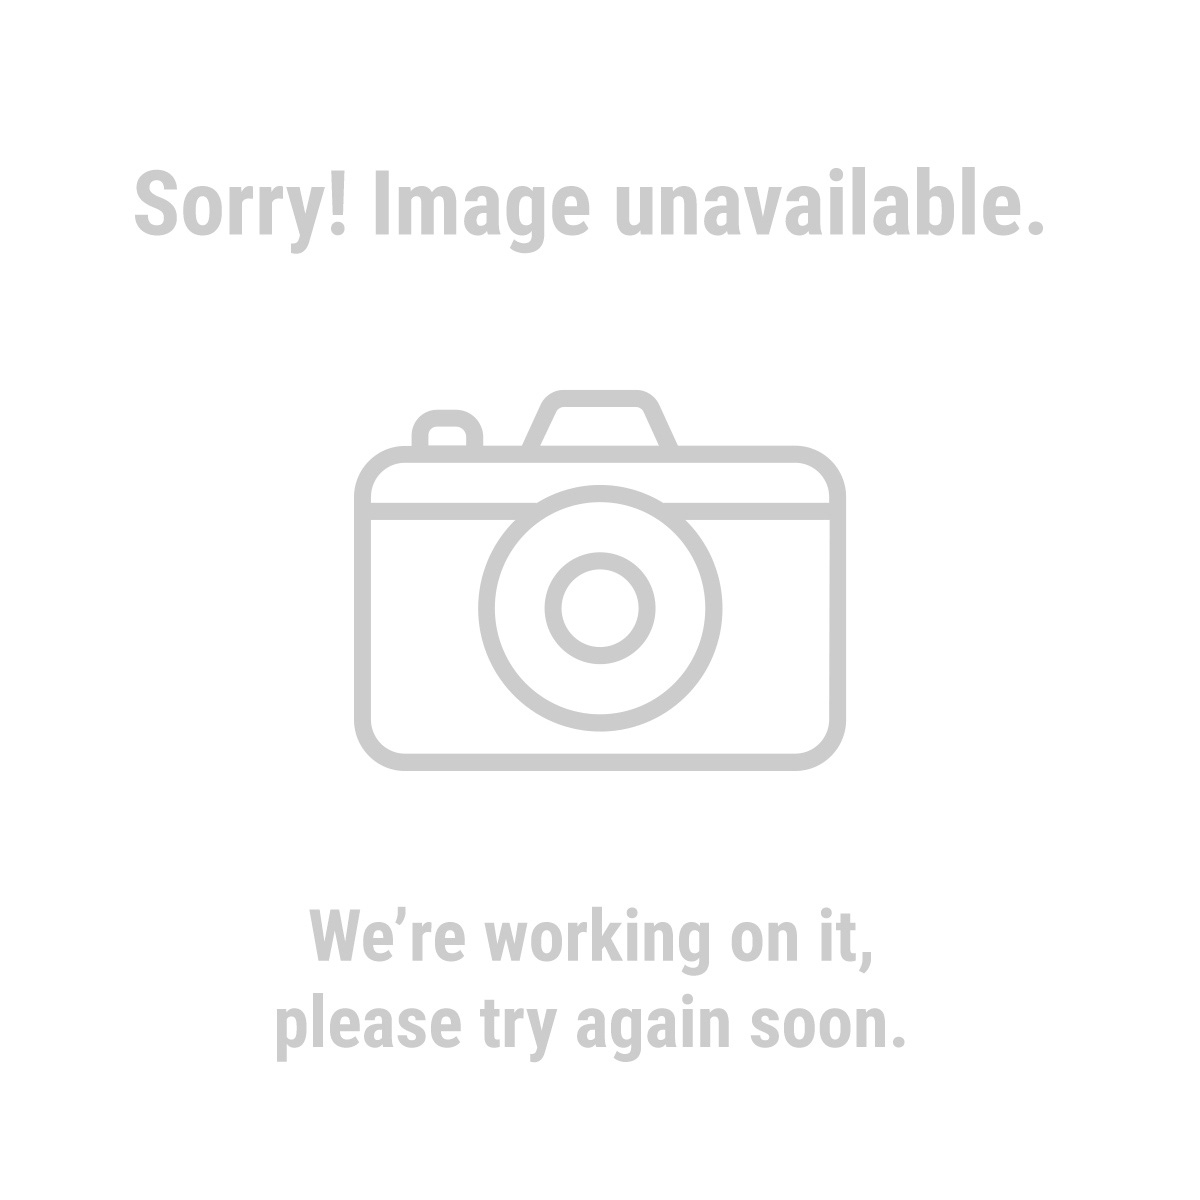 Western Safety 99762 Safety Glasses, Clear Lens